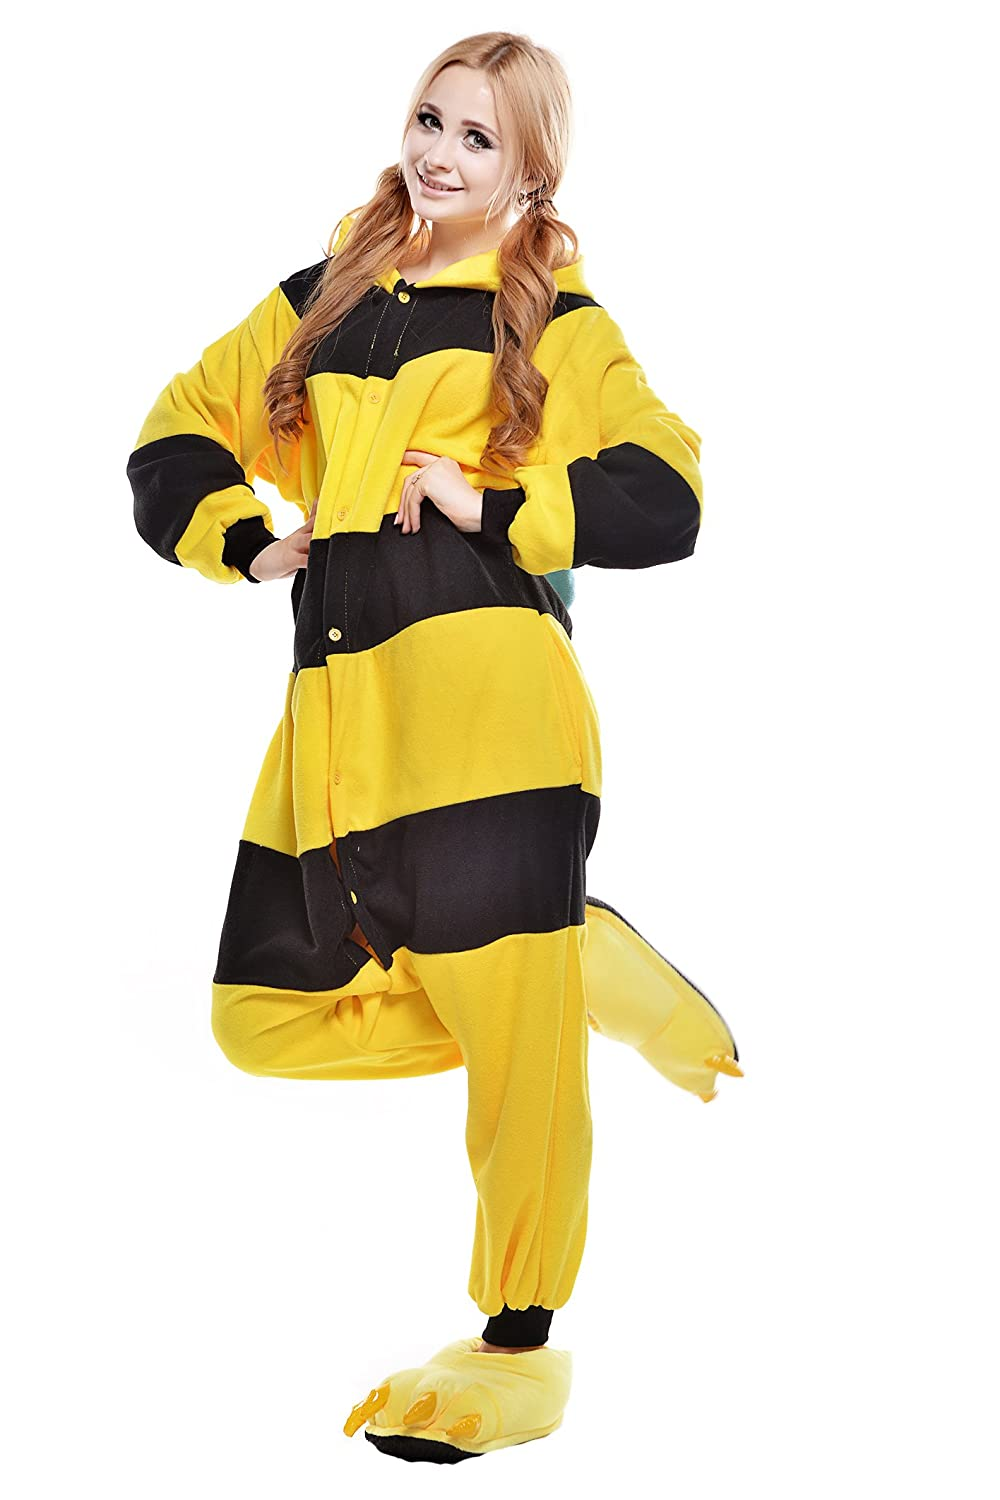 Amazon.com: NEWCOSPLAY Halloween Unisex Adult Bee Pajamas Cosplay costumes: Clothing